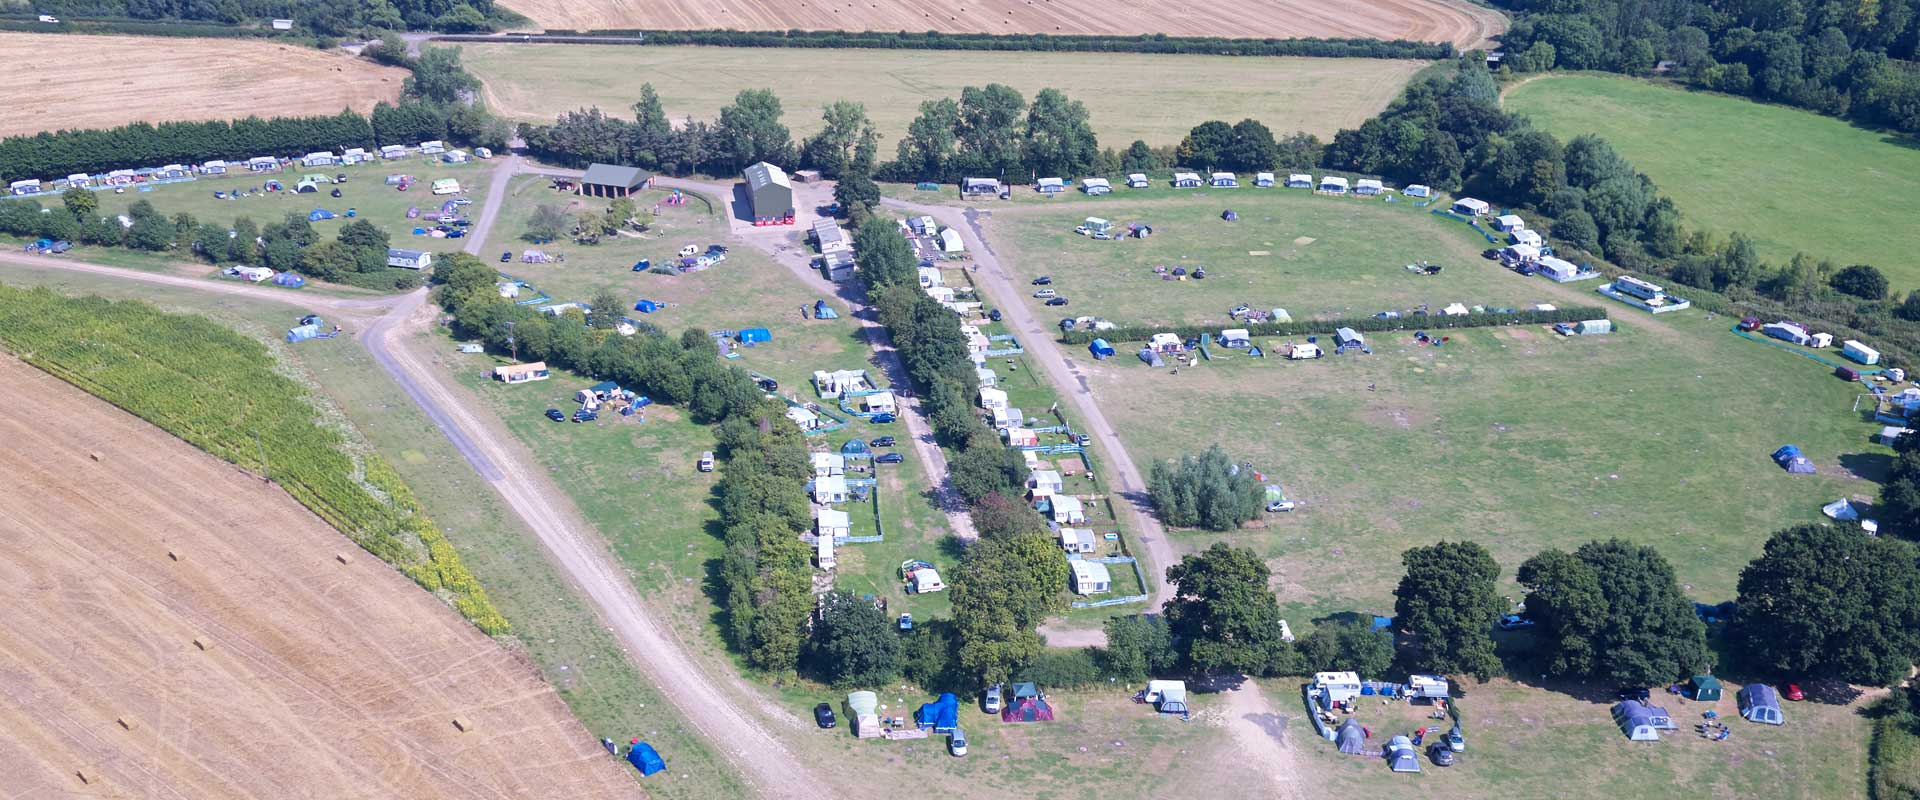 Park Farm Campsite Bodiam East Sussex Caravan And